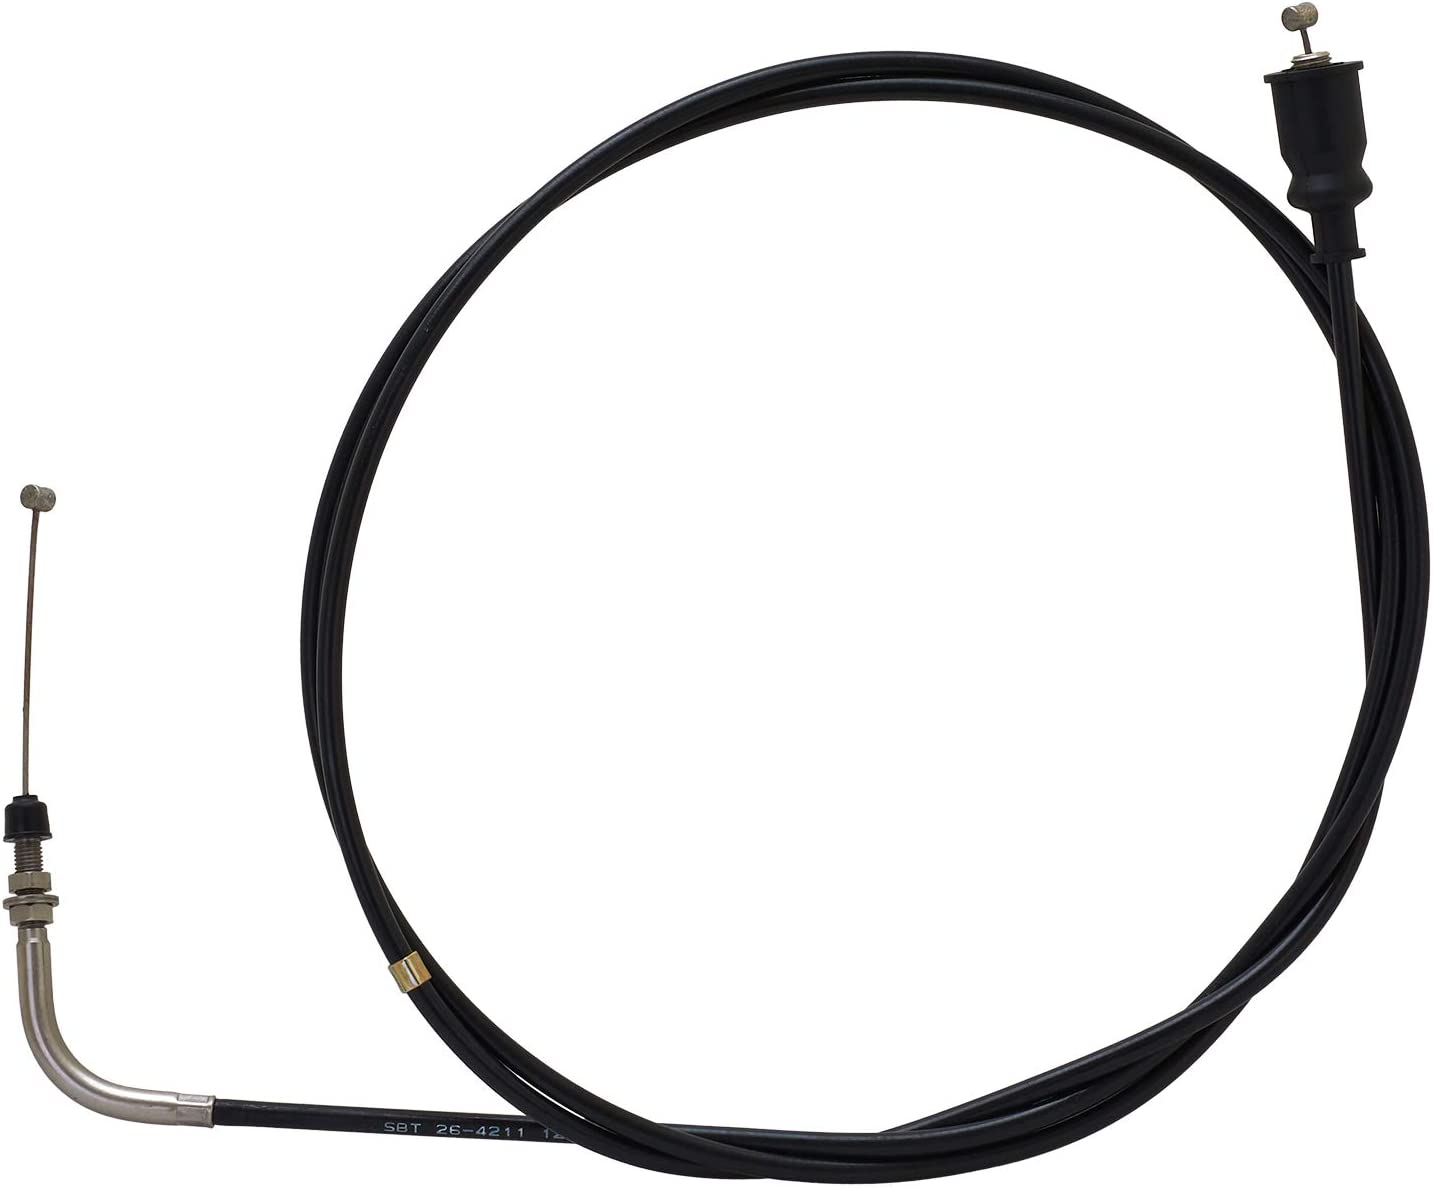 Kawasaki Throttle Cable 1990 SX 54012-3723 40% OFF Cheap Sale Quality inspection 550